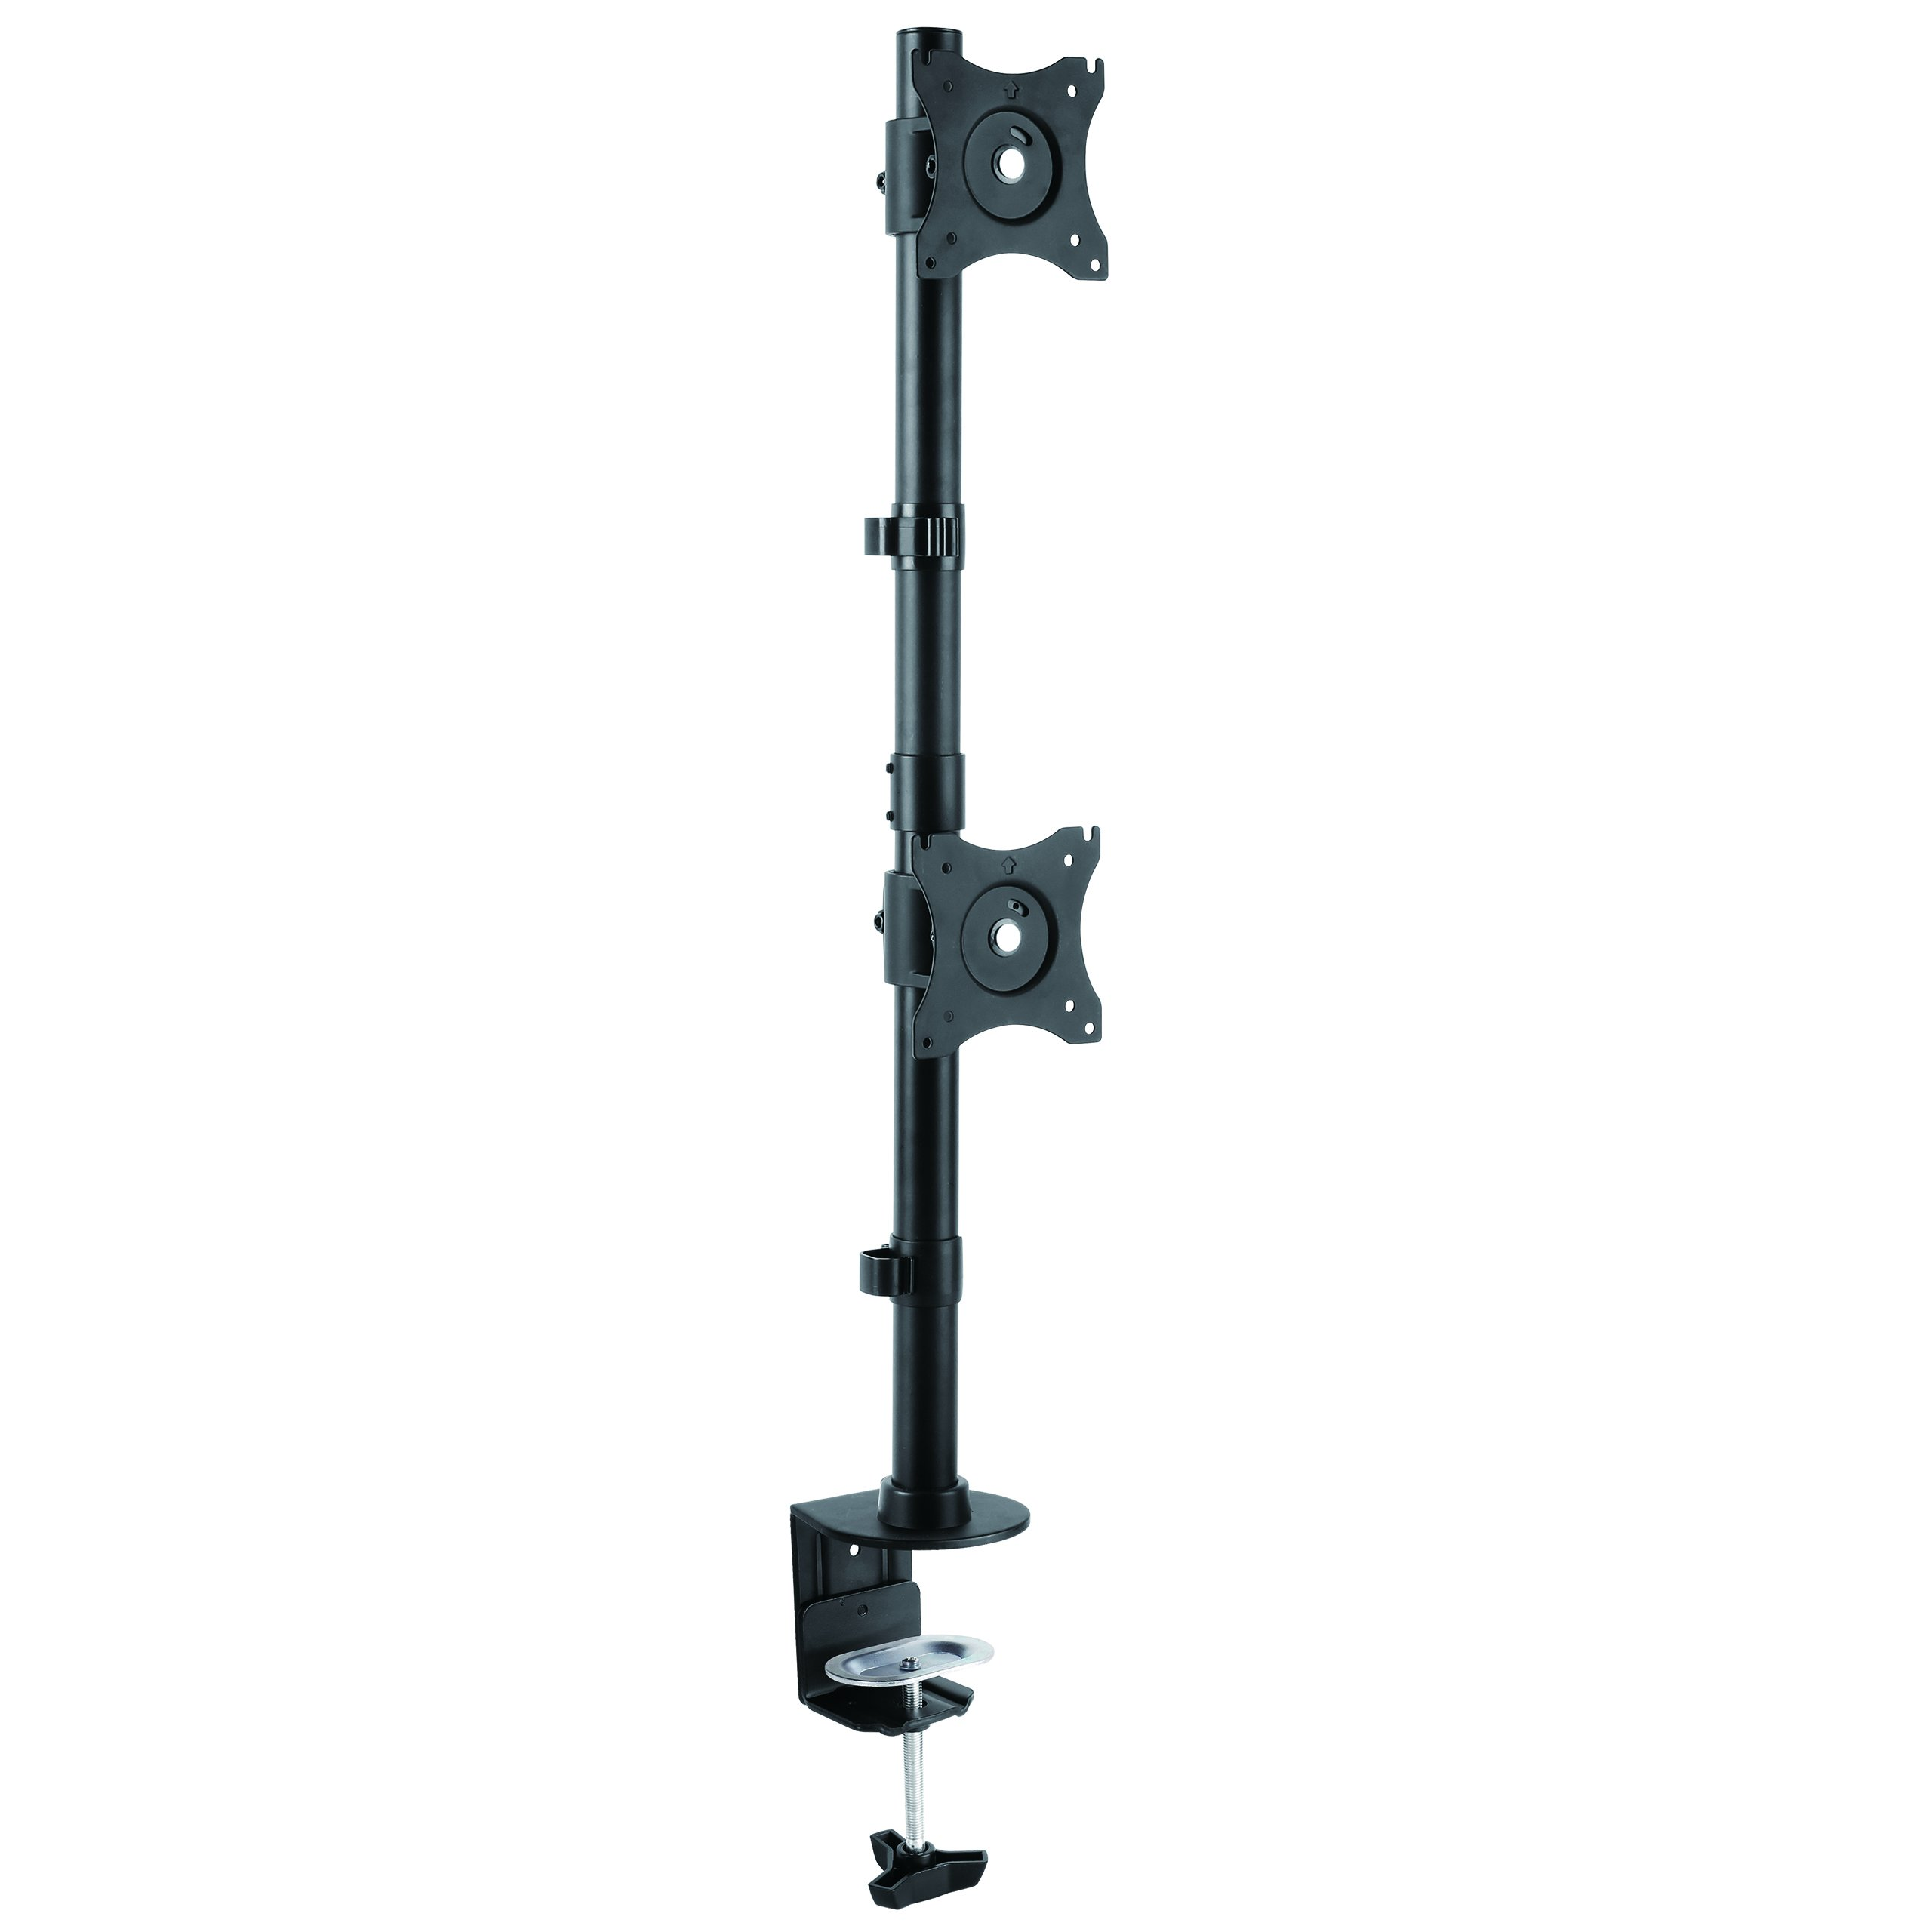 StarTech.com Vertical Dual Monitor Mount - Heavy Duty Steel for VESA Mount Monitors up to 27'' (ARMDUALV)